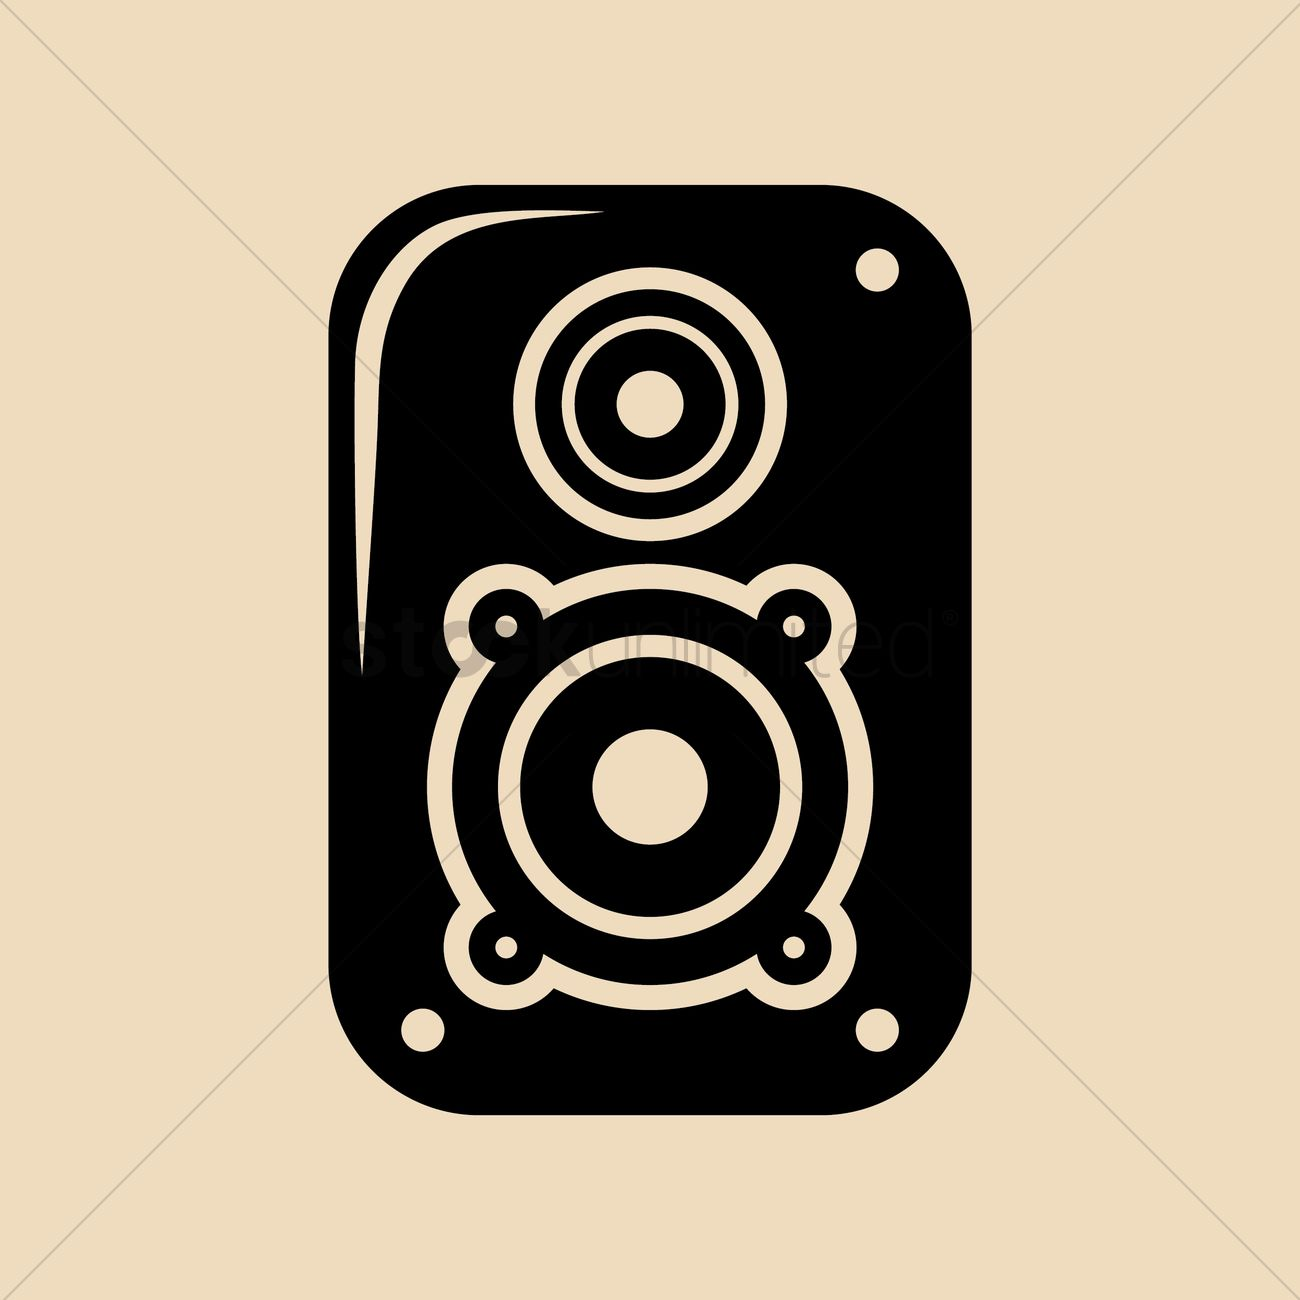 Speaker Box Vector at GetDrawings com | Free for personal use